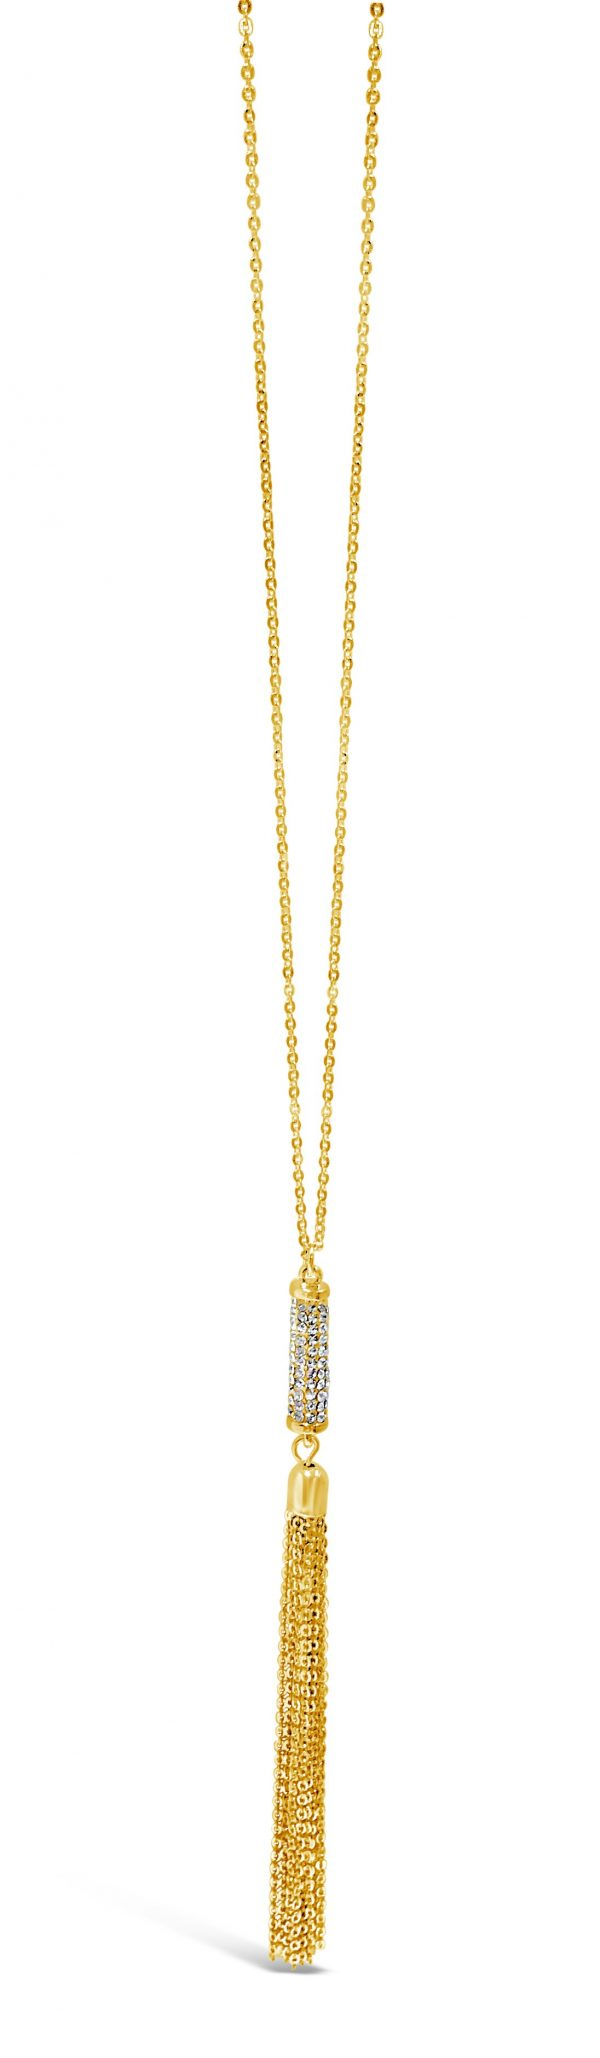 ABSOLUTE N1097GL NECKLACE